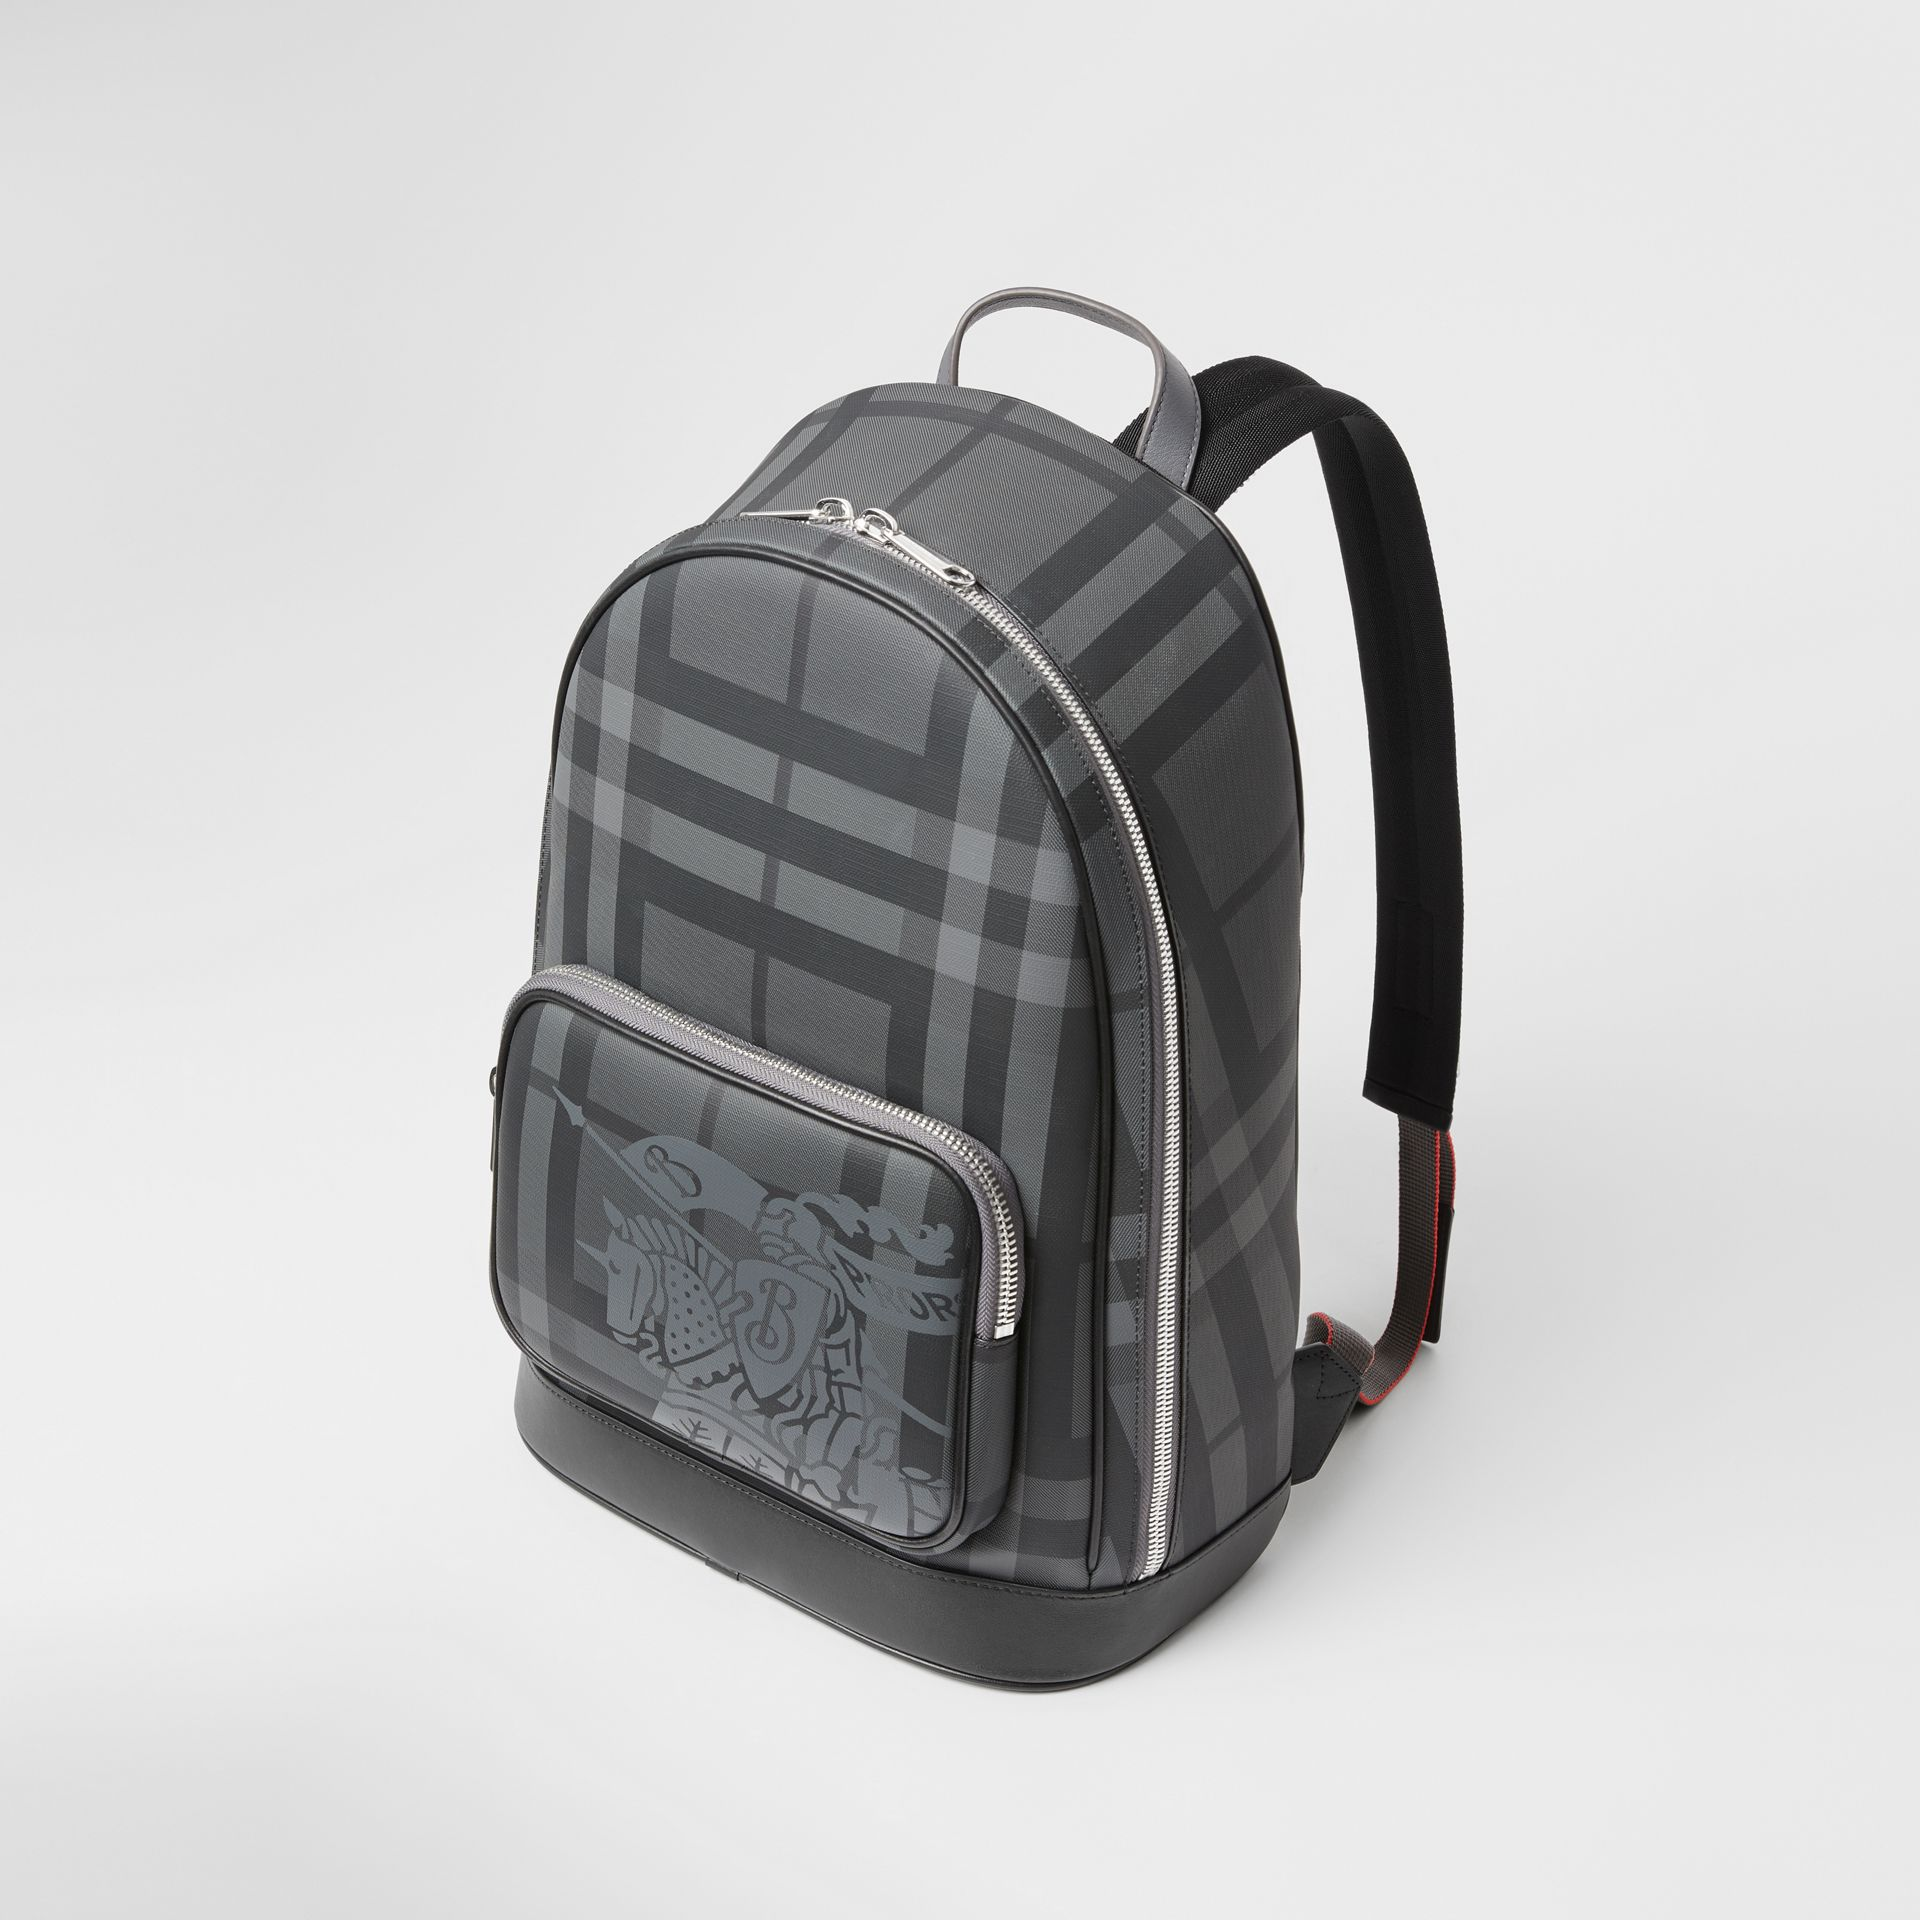 EKD London Check and Leather Backpack in Charcoal/black - Men | Burberry - gallery image 4